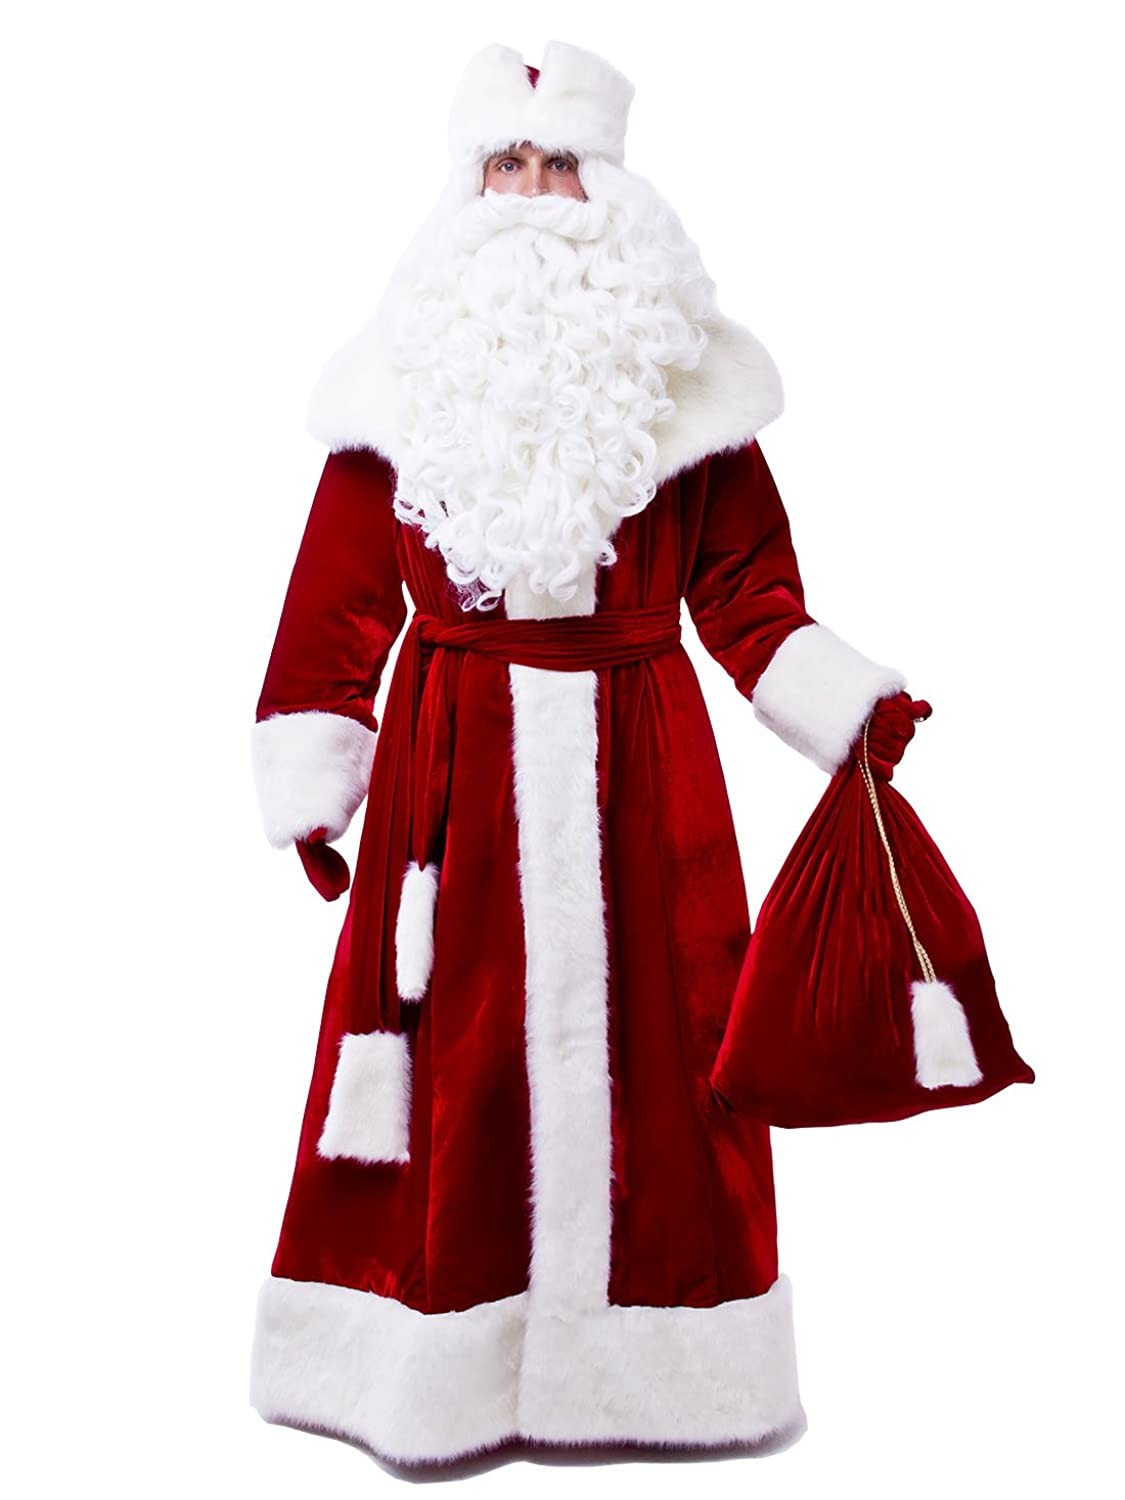 amazoncom russian santa claus suit for adult ded moroz costume christmas father frost outfit red clothing - Santa Claus Coat